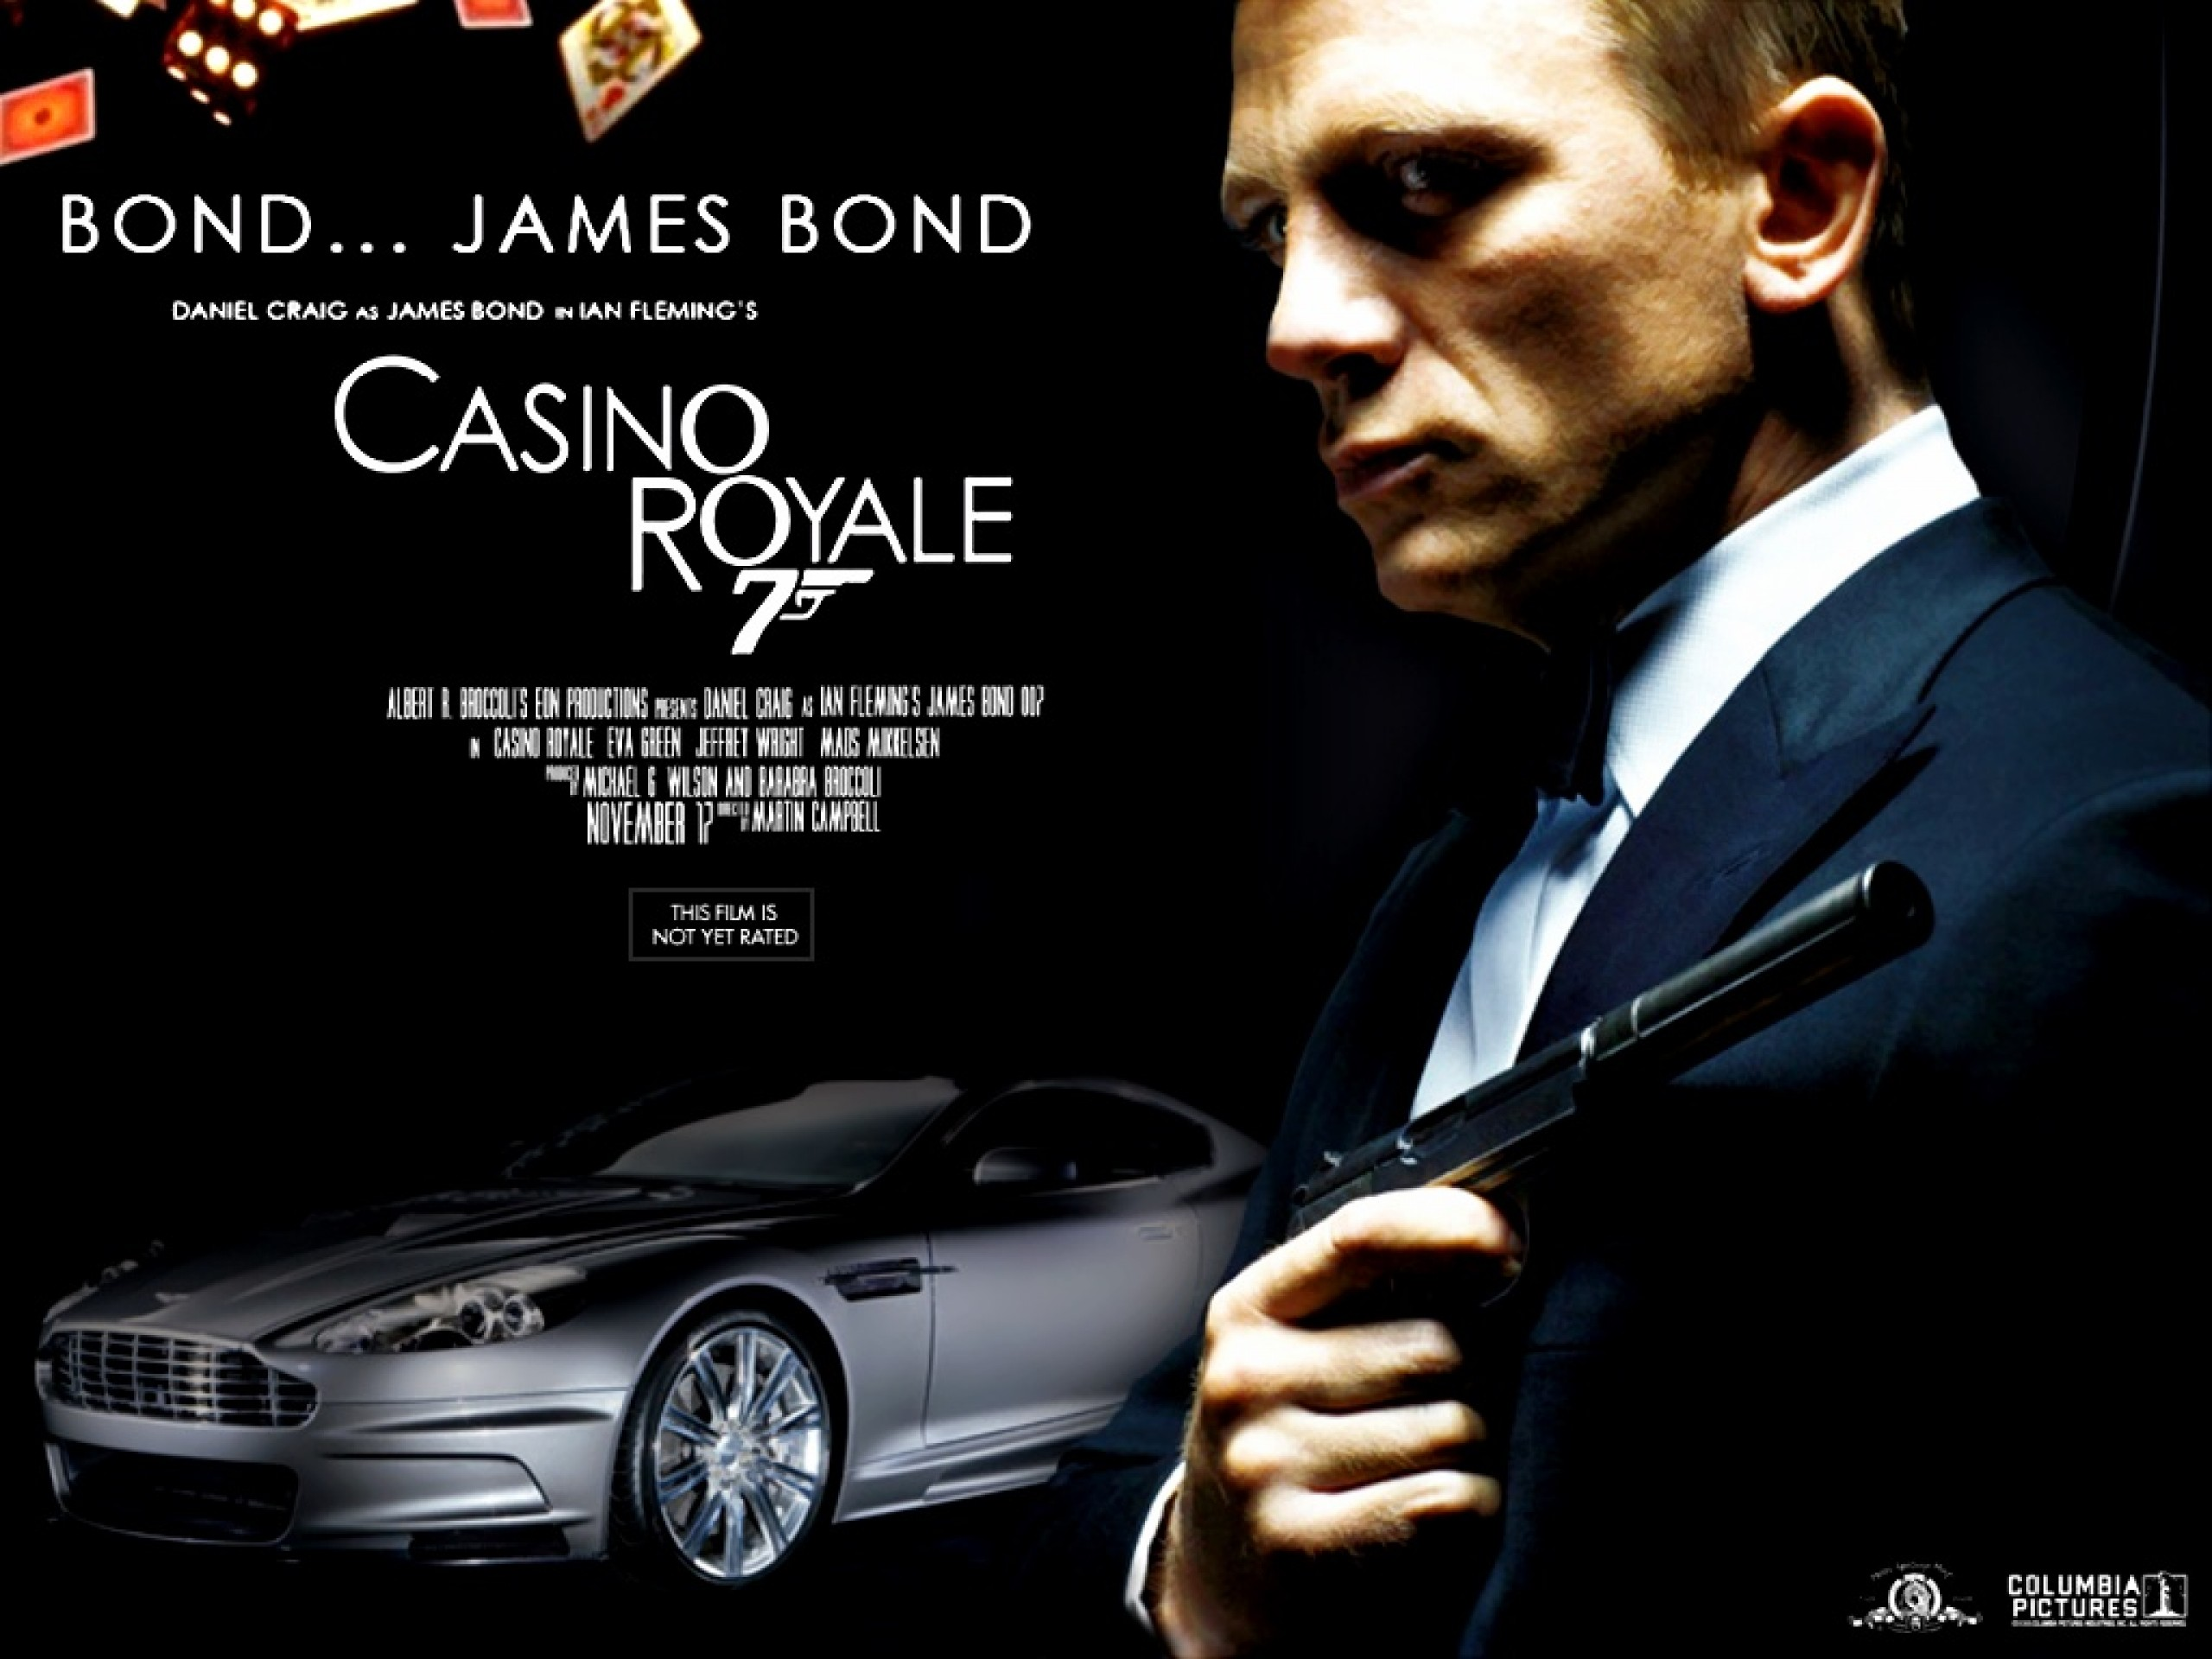 James bond casino royale theam song odds percentage sign outside casino